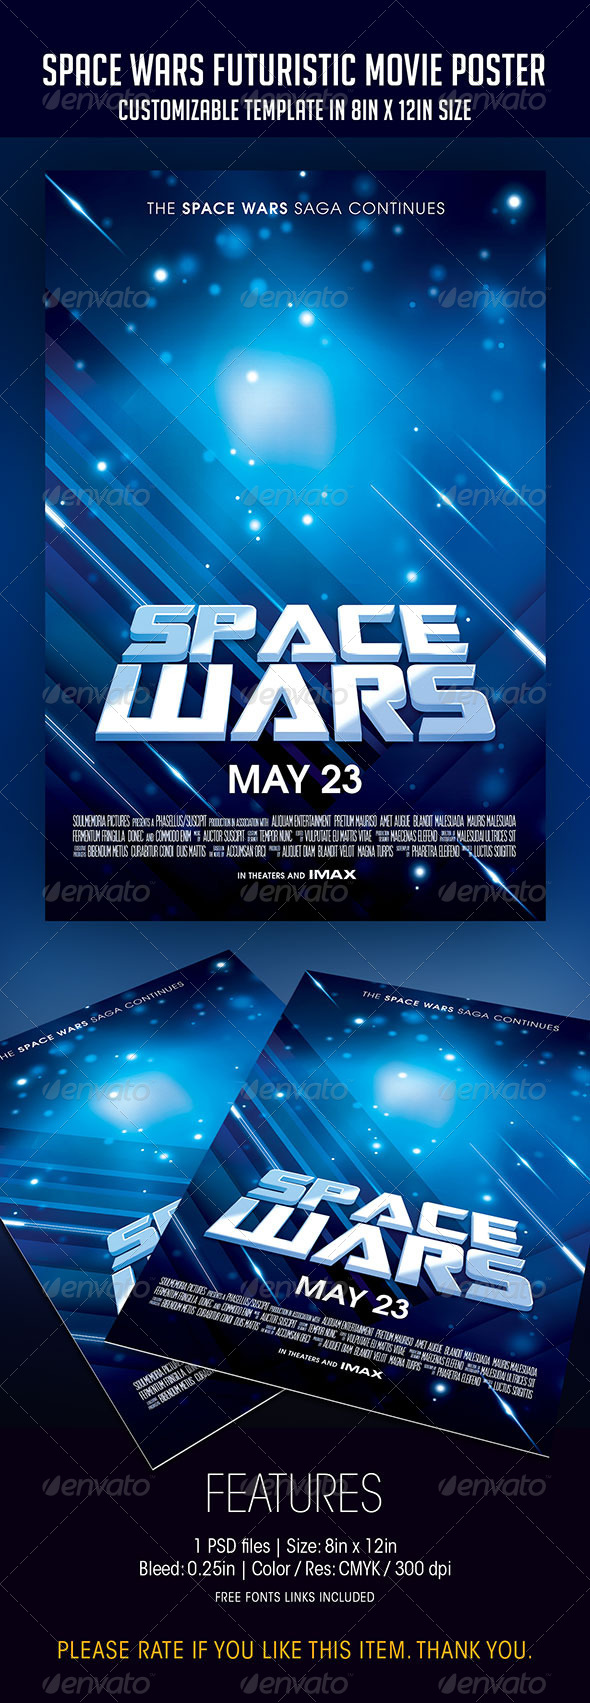 Space wars futuristic movie poster by soulmemoria graphicriver space wars futuristic movie poster flyers print templates pronofoot35fo Image collections